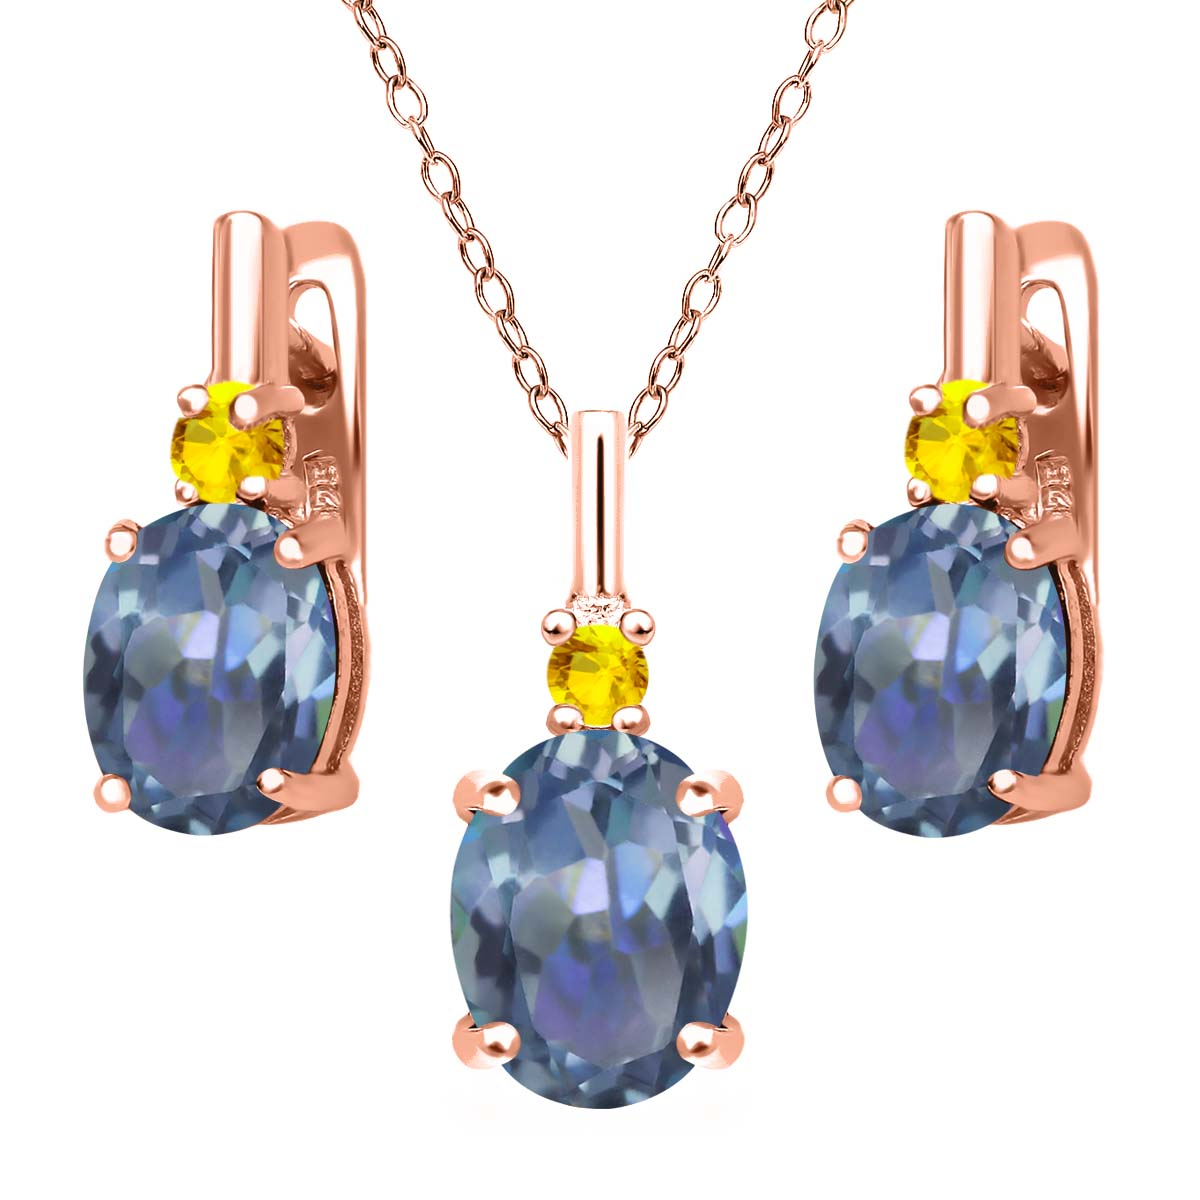 6.99 Ct Cassiopeia Mystic Topaz Yellow Sapphire 18K Rose Gold Plated Silver Pendant Earrings Set by